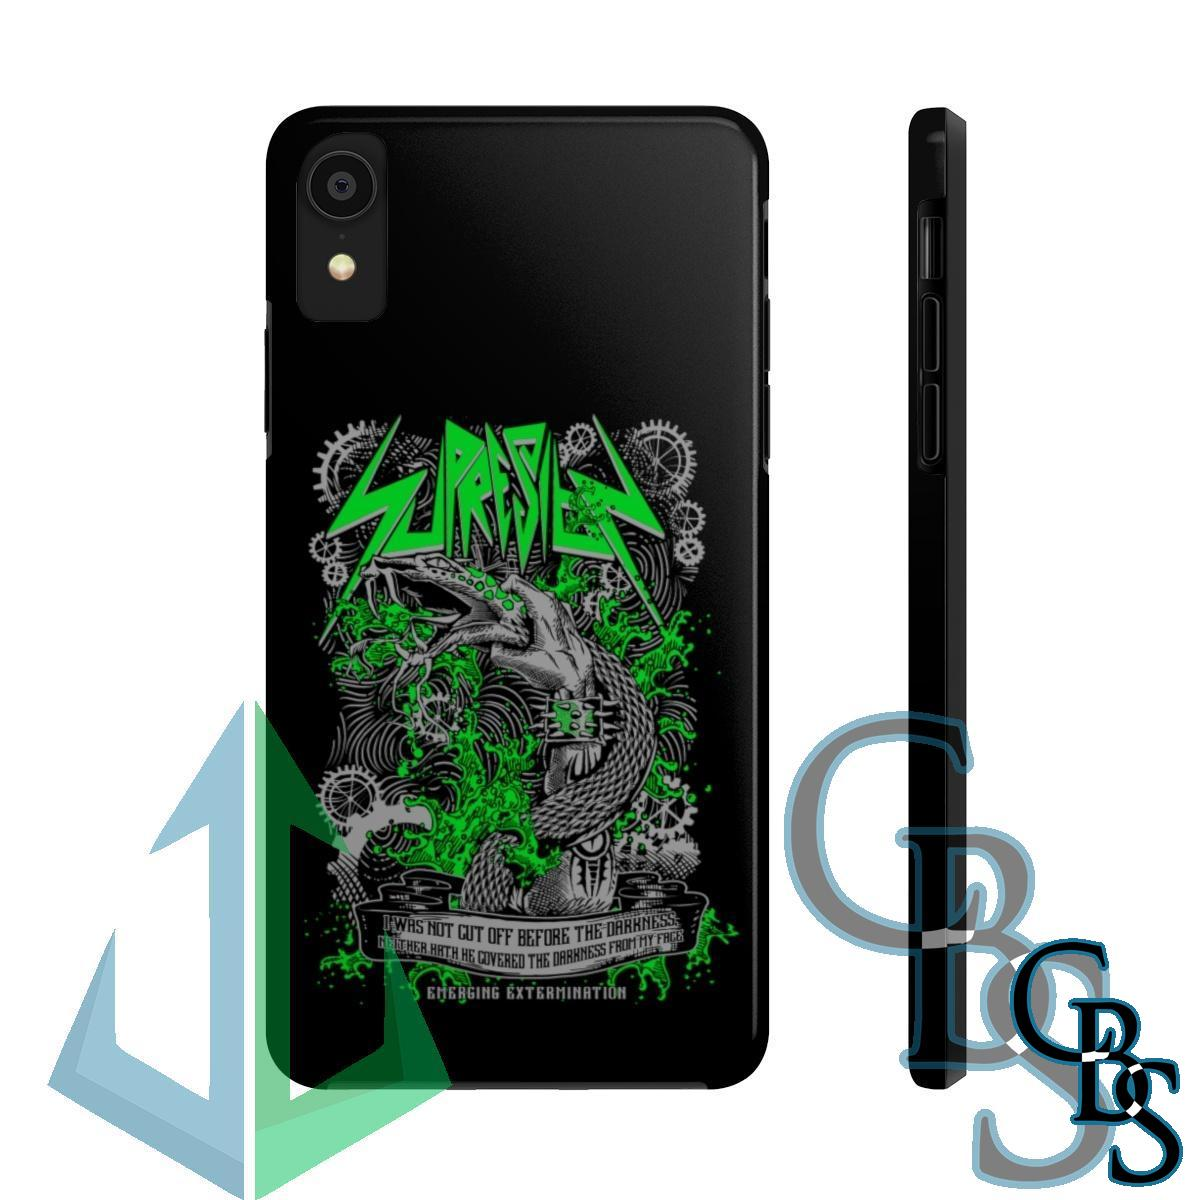 Supresion Serpent (Green) iPhone Cases (iPhone 7/7 Plus, iPhone 8/8 Plus, iPhone X, XS, XR, iPhone 11, 11 Pro, 11 Pro Max)